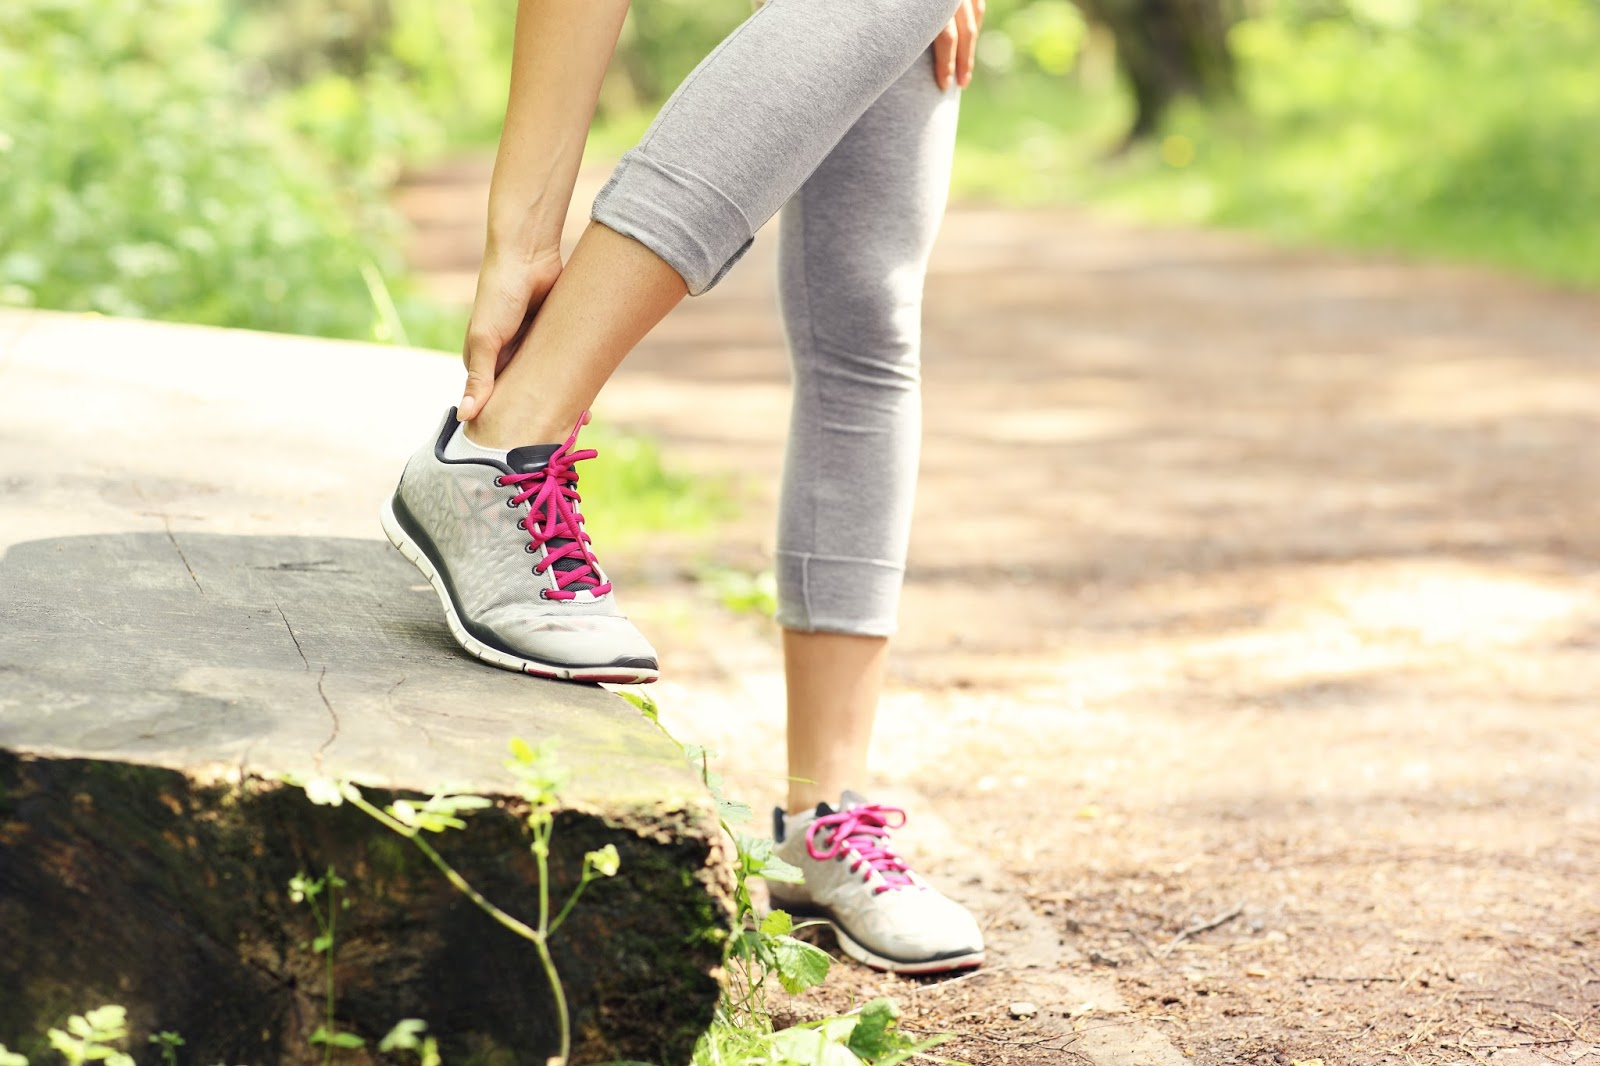 Woman out walking feels pain in her Achilles area.